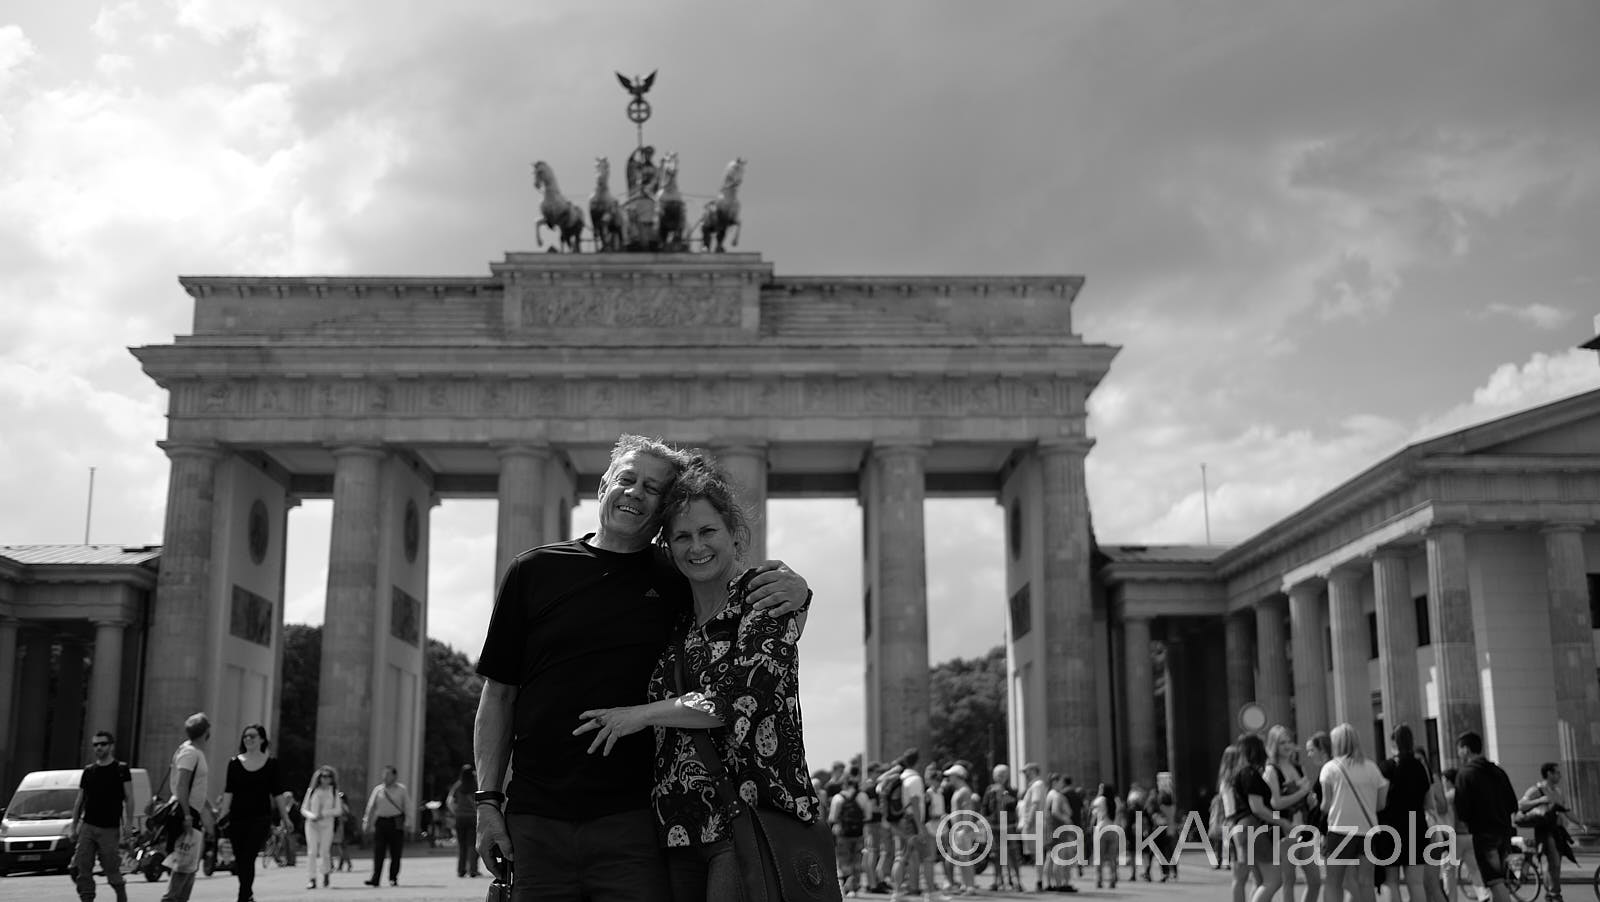 Frank and Gabi at Brandenburg gate